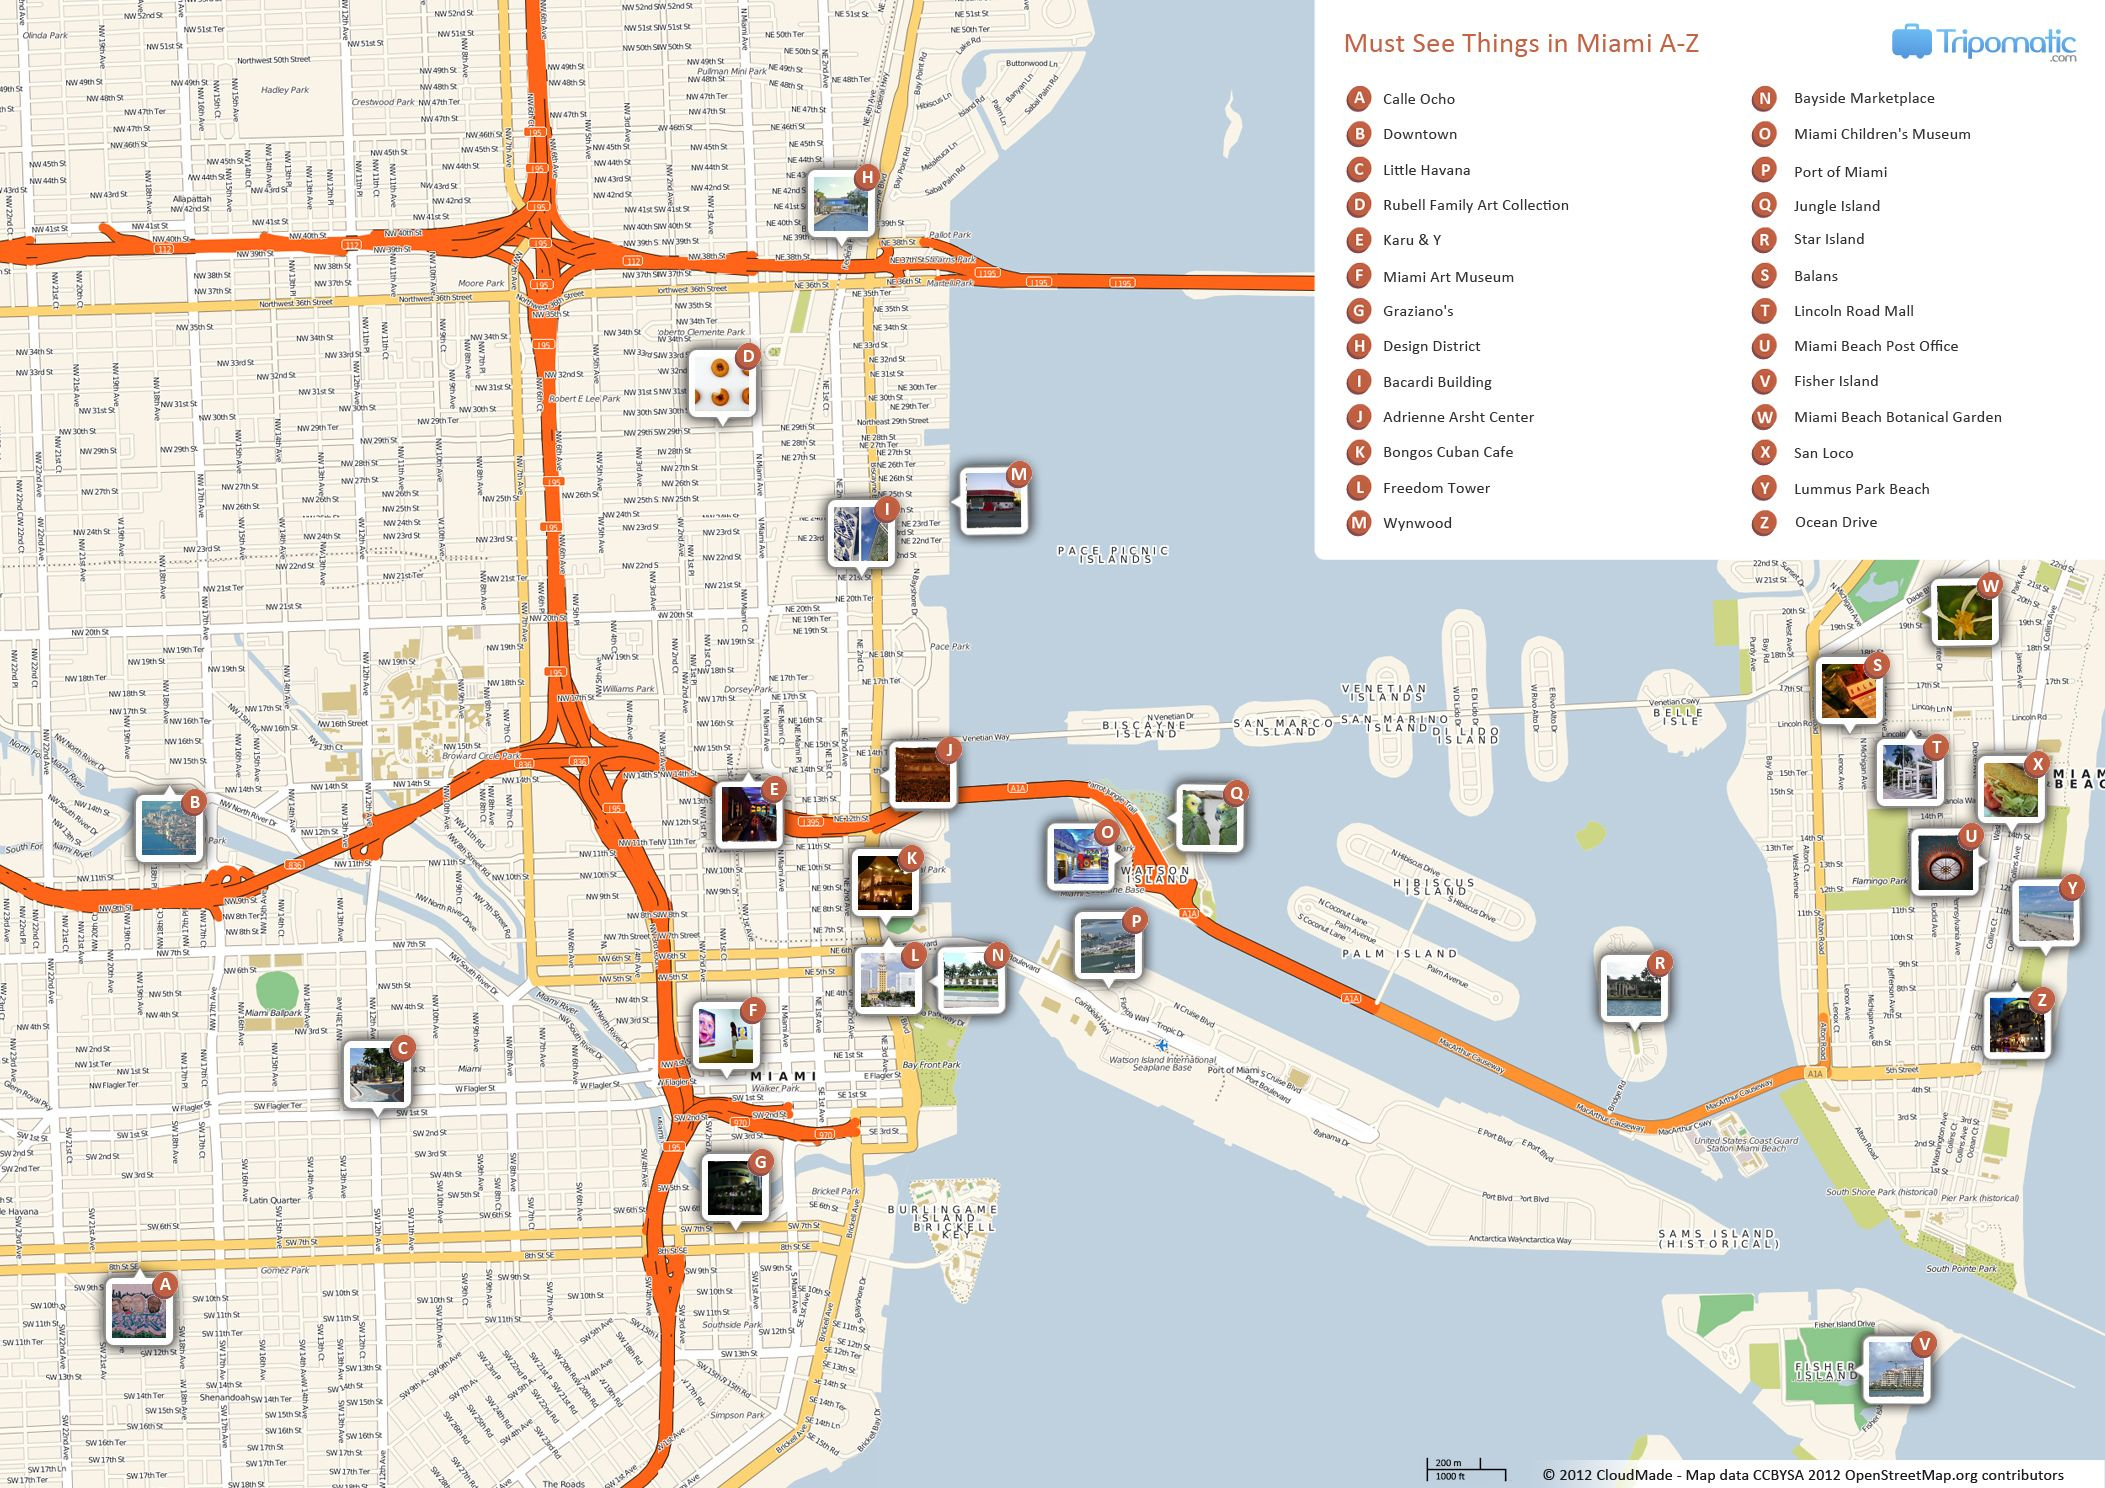 Miami Printable Tourist Map | Free Tourist Maps ✈ | Pinterest - Los Cayos Florida Map